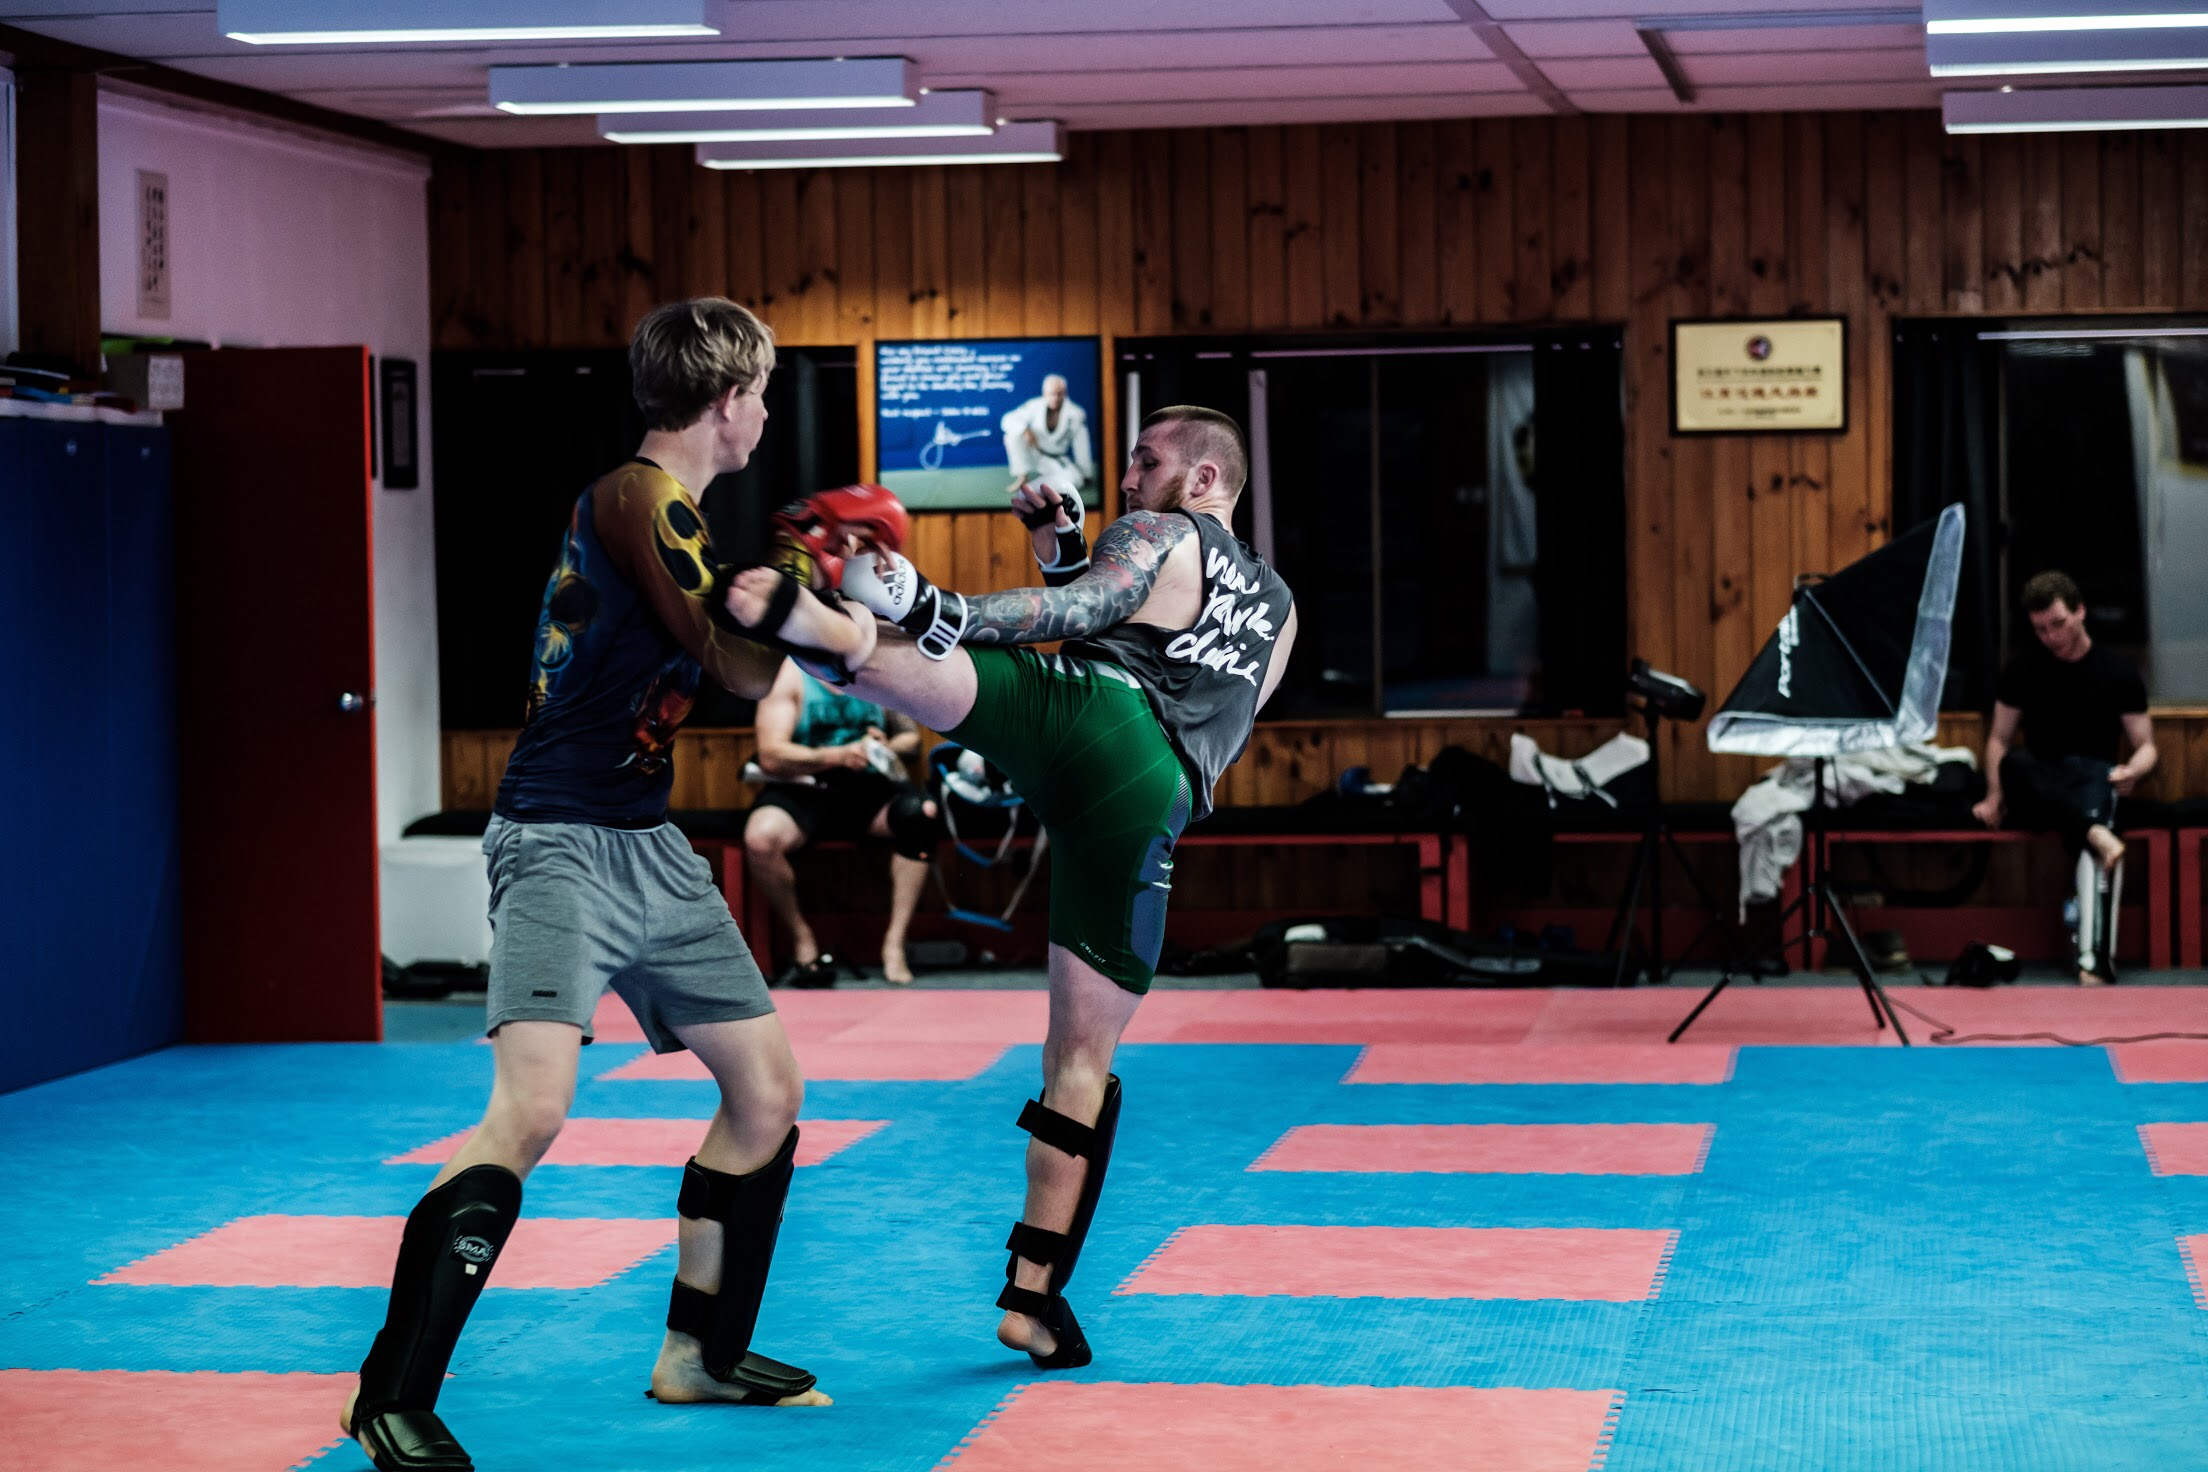 kickboxing is going to take a competition edge this term.